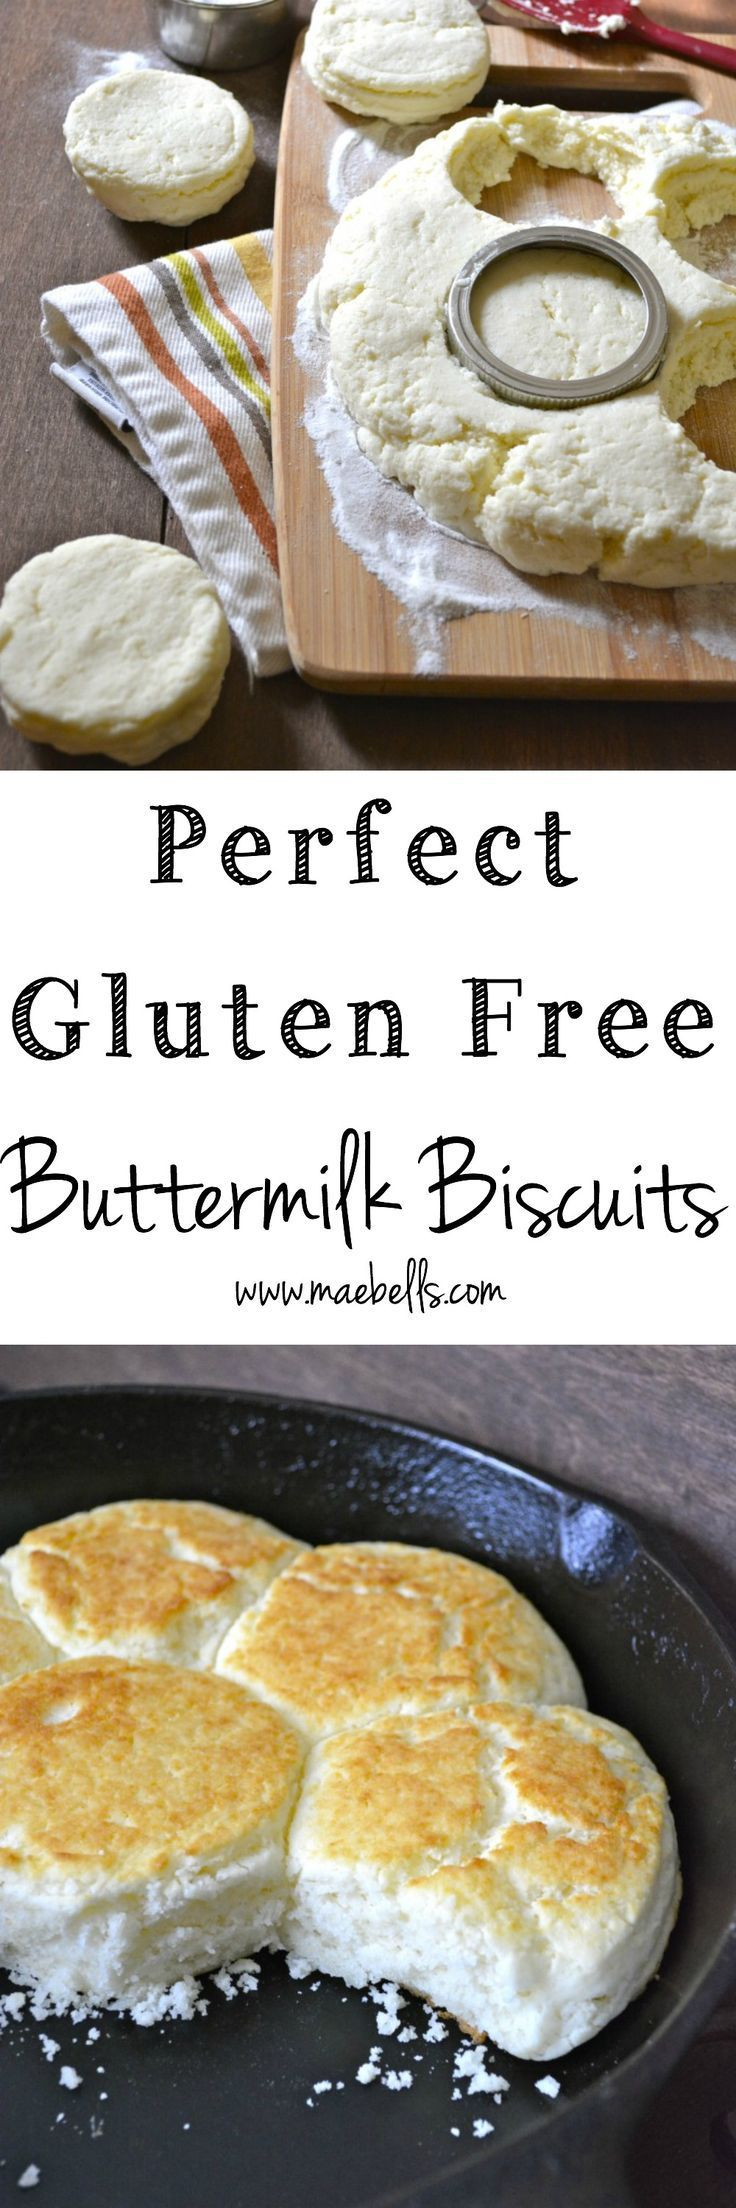 17 Best images about Gluten Free on Pinterest | Simple ...